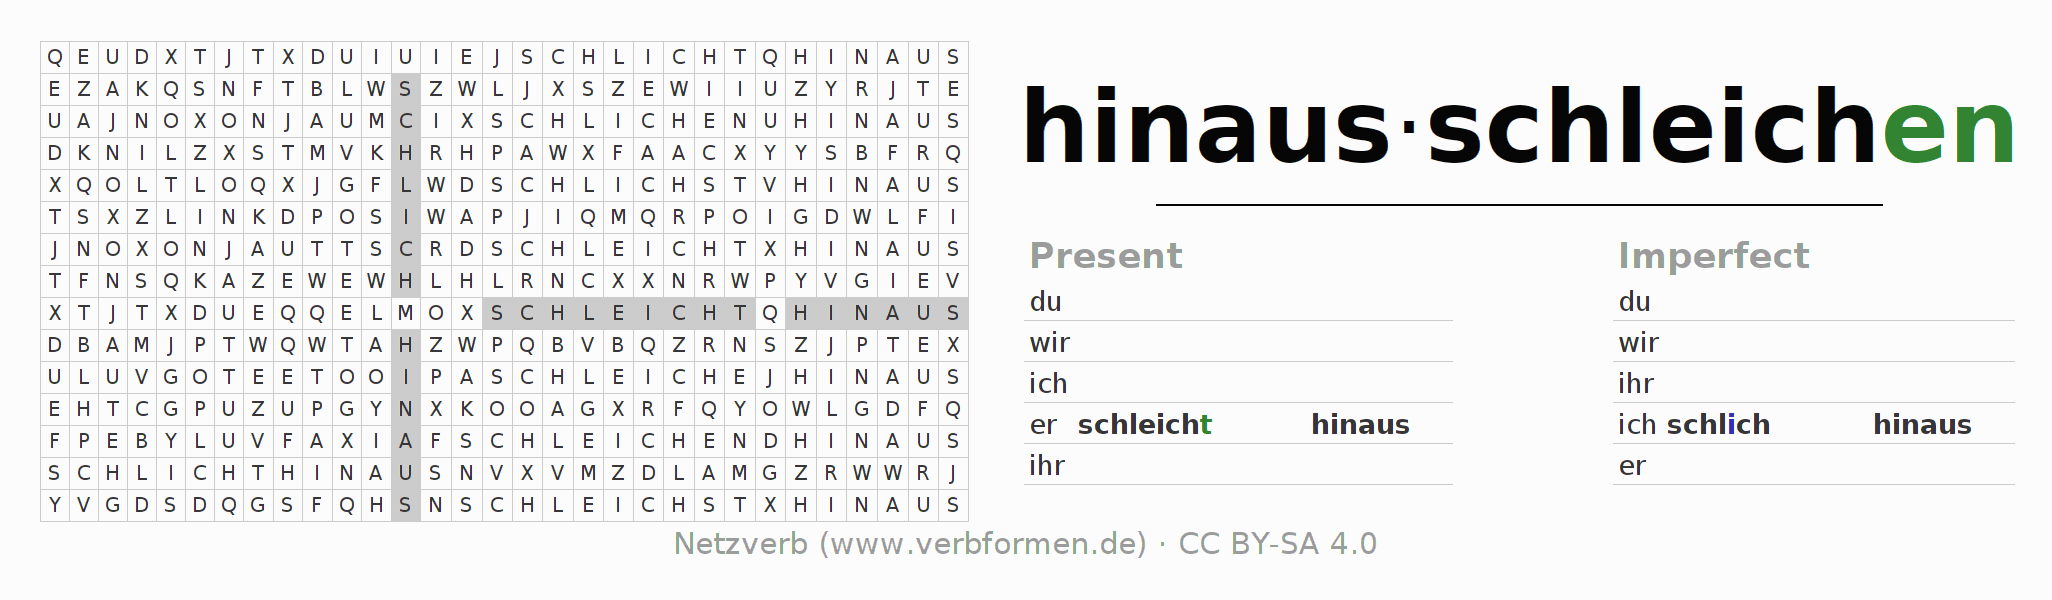 Word search puzzle for the conjugation of the verb hinausschleichen (ist)